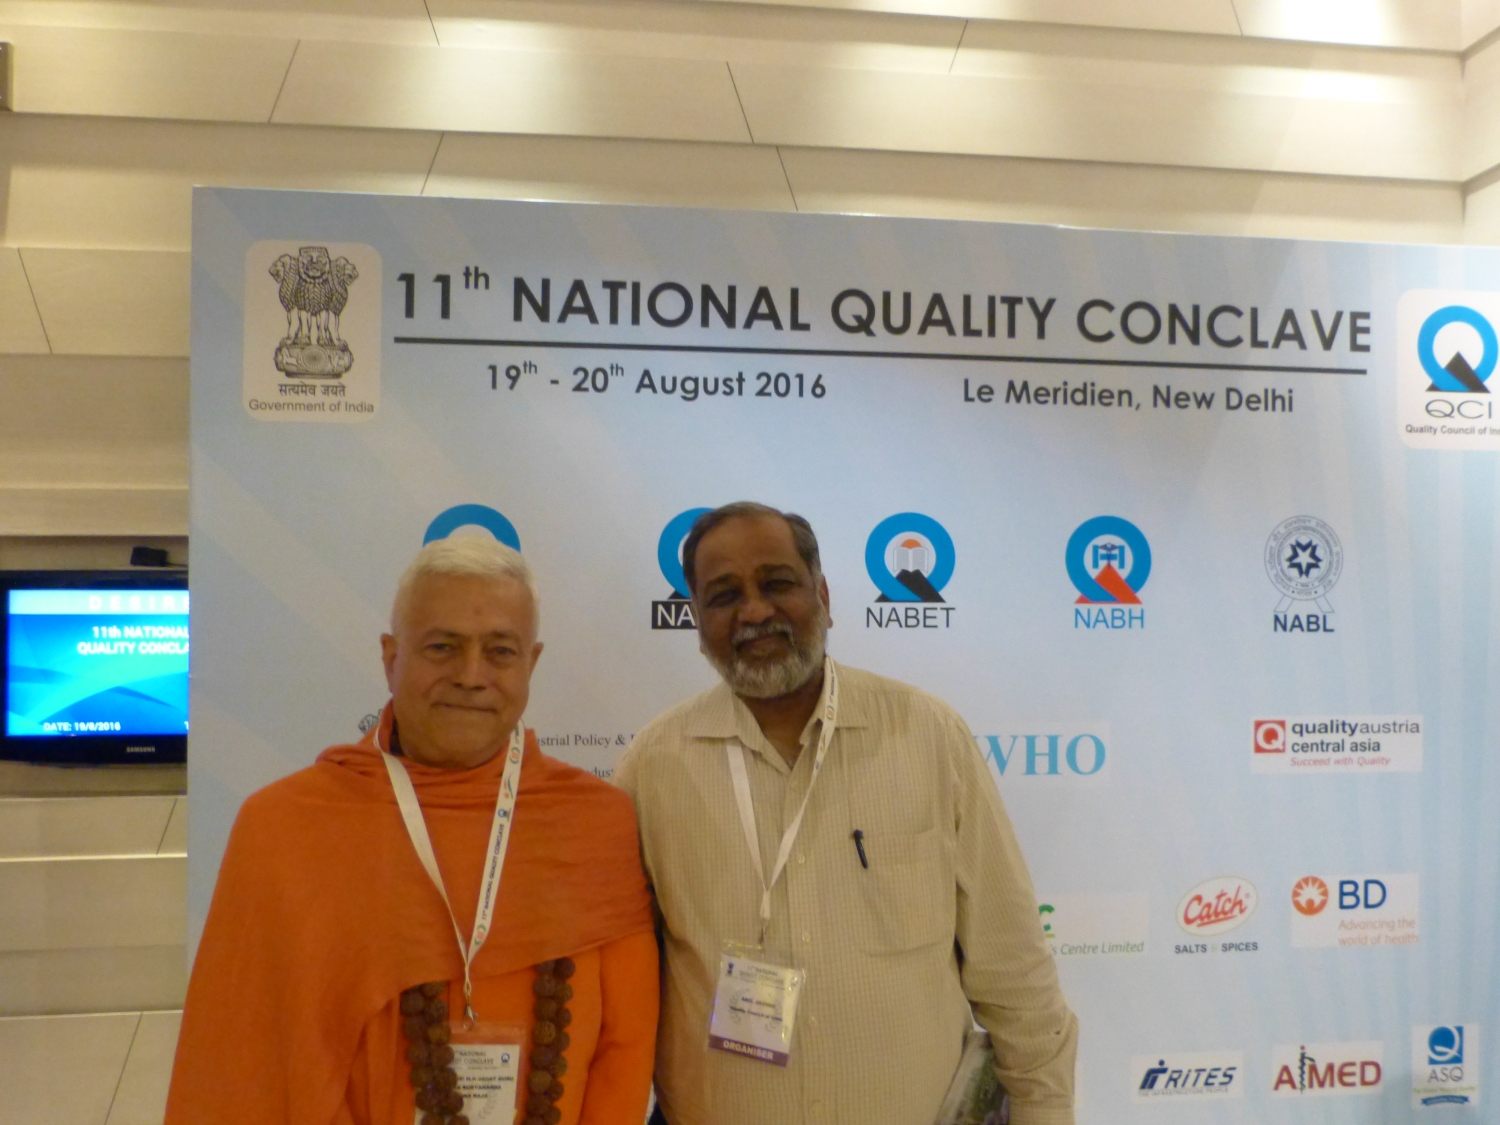 H.H. Jagat Guru Amrta Sūryānanda Mahā Rāja et Anil Jauhri, CEO of the NABCB of Quality Council of India